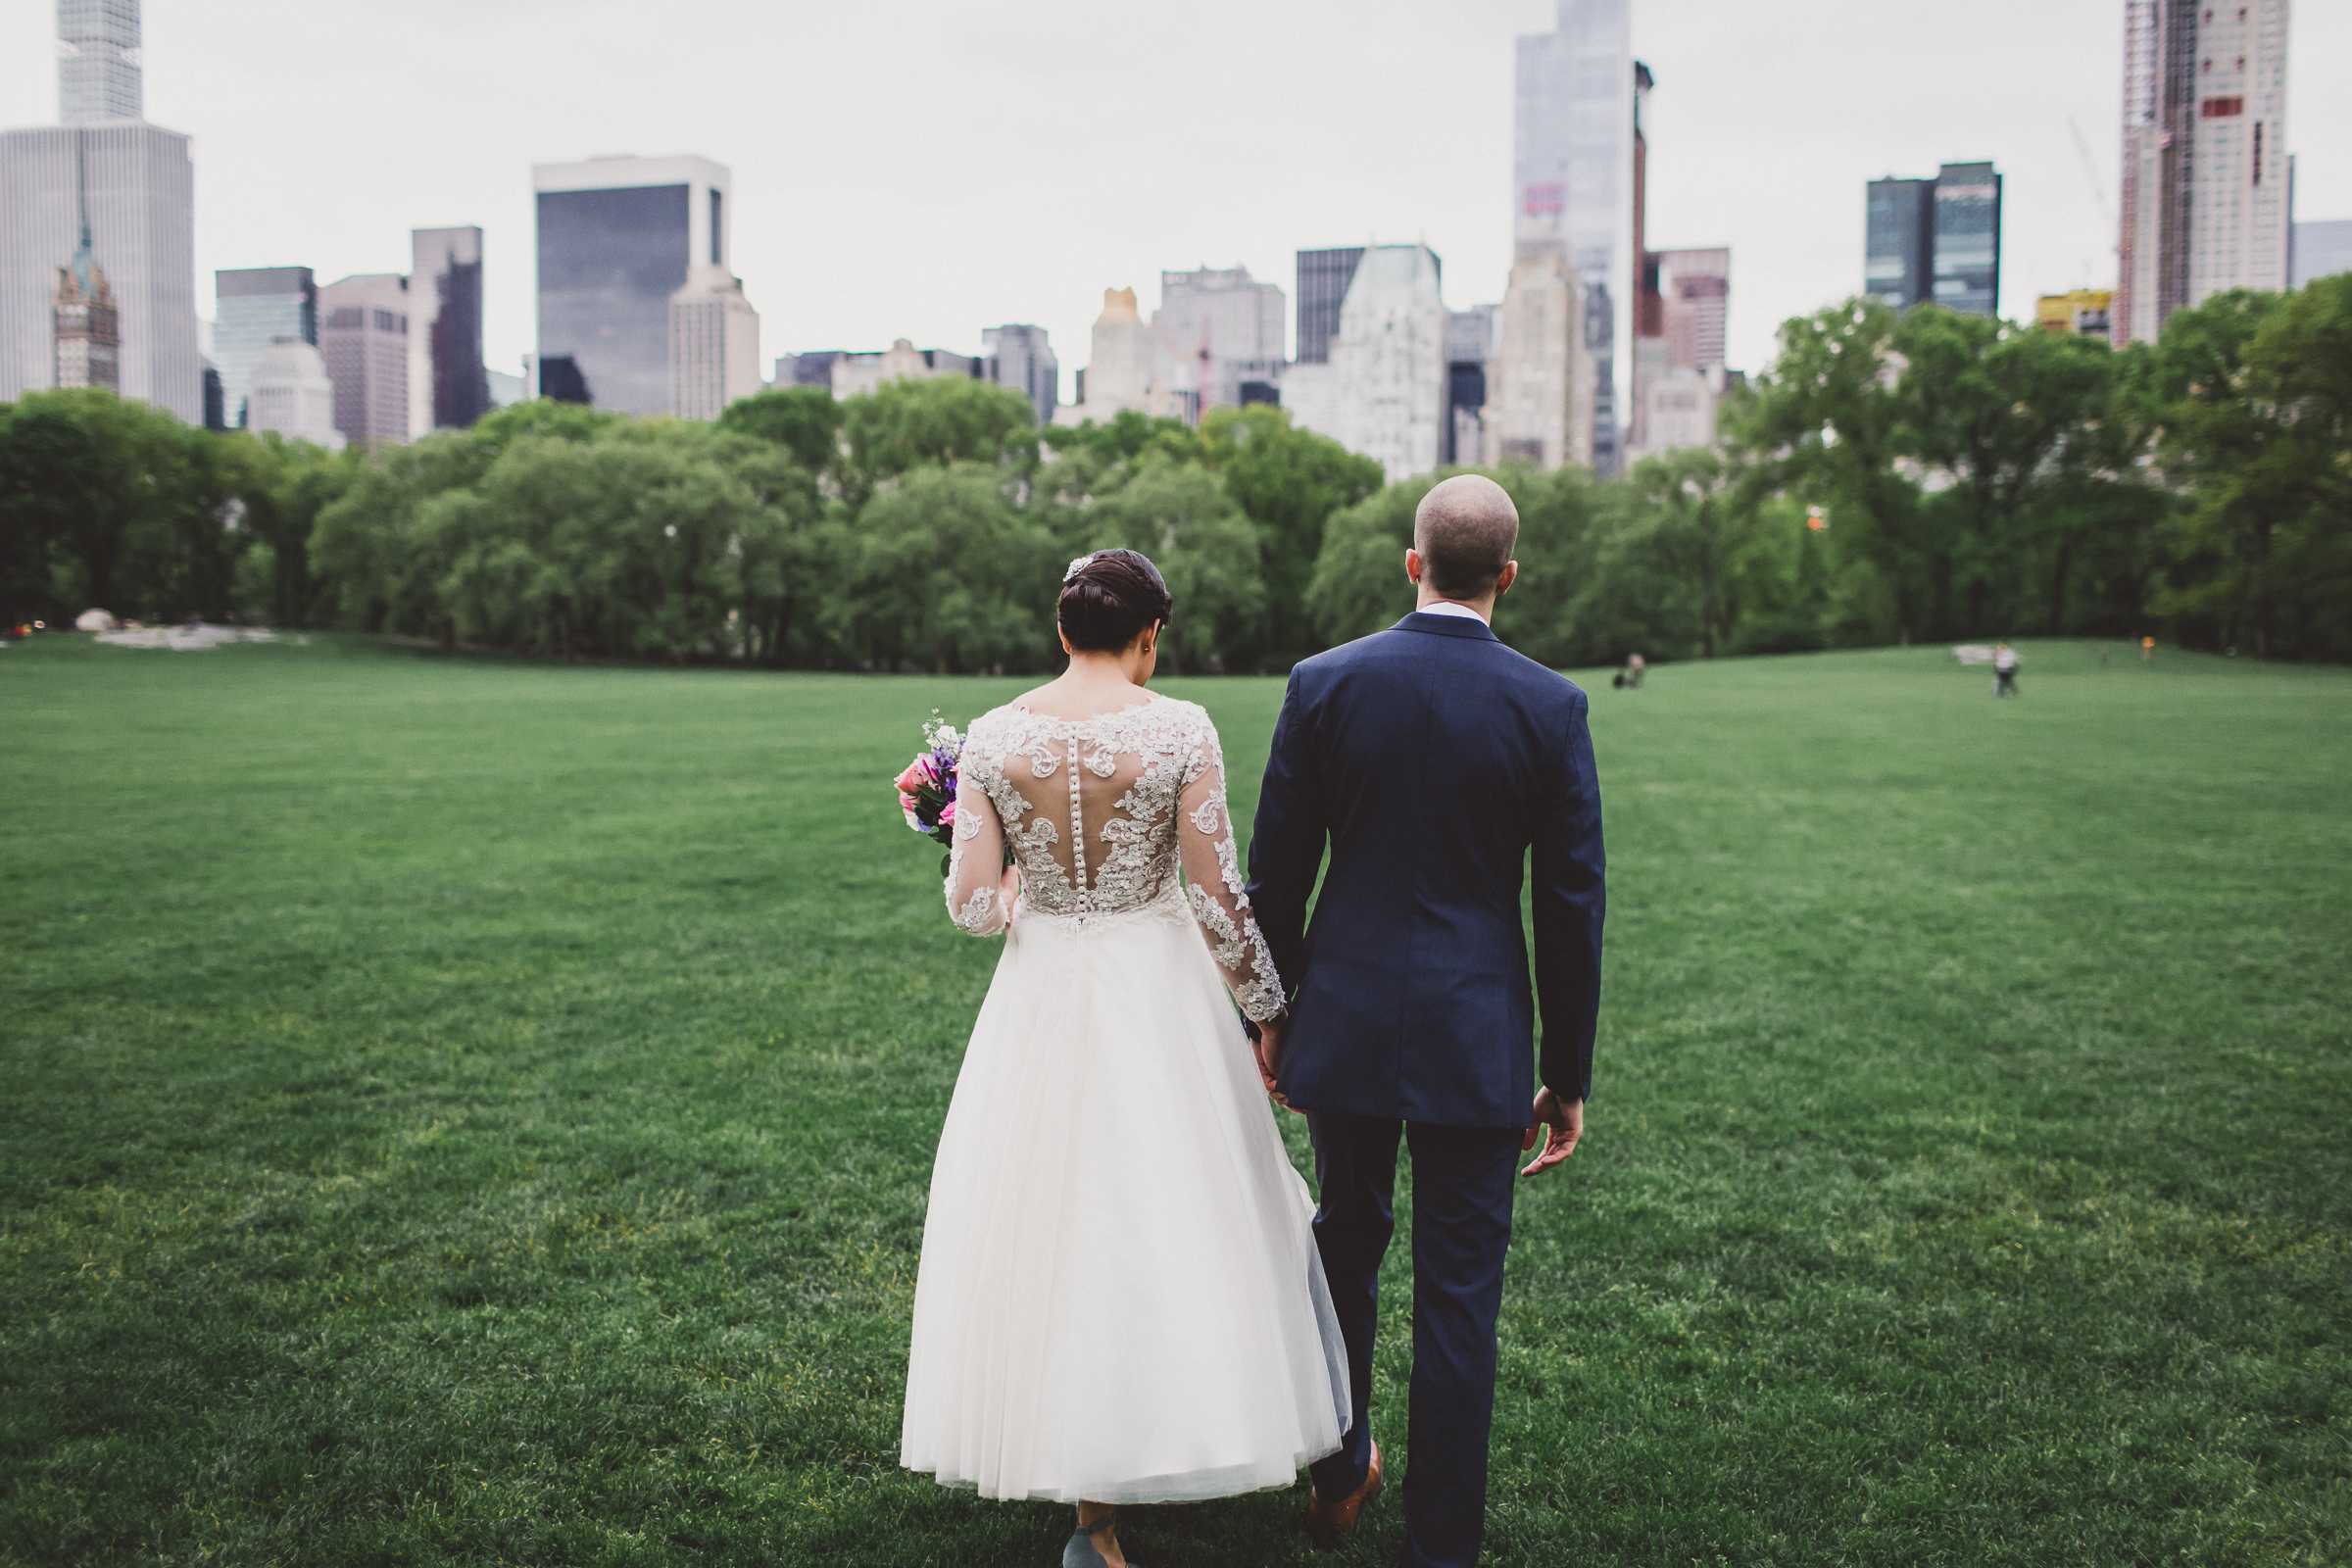 Wagner-Cove-Central-Park-Elopement-New-York-Documentary-Wedding-Photographer-29.jpg